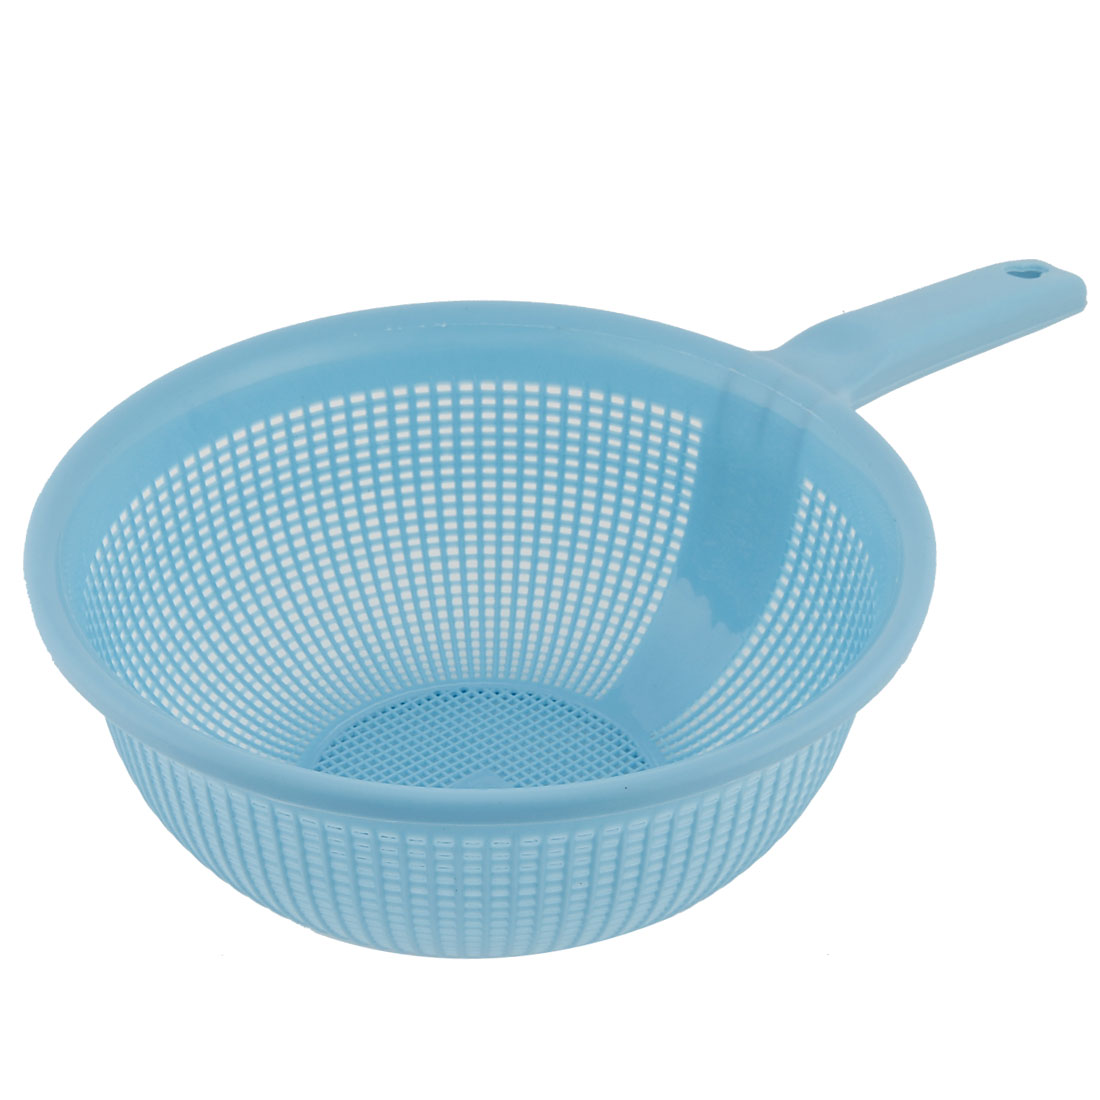 Kitchenware Round Hollow Out Plastic Fruit Vegetables Rice Dripping Wash Storage Basket Holder Sky Blue